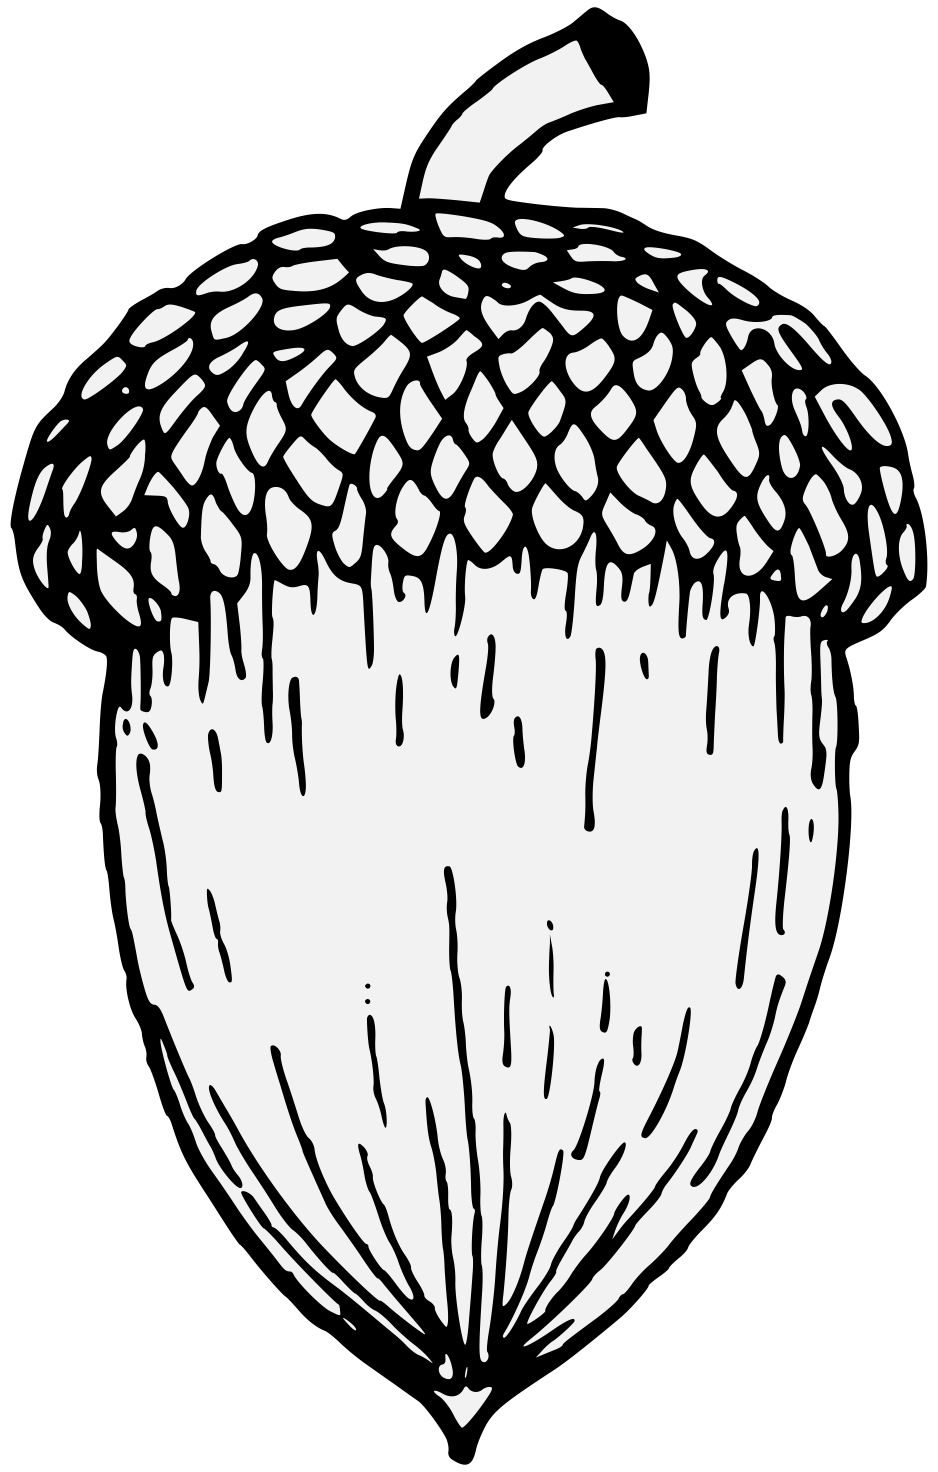 938x1472 Basket Clipart Line Drawing For Free Download And Use